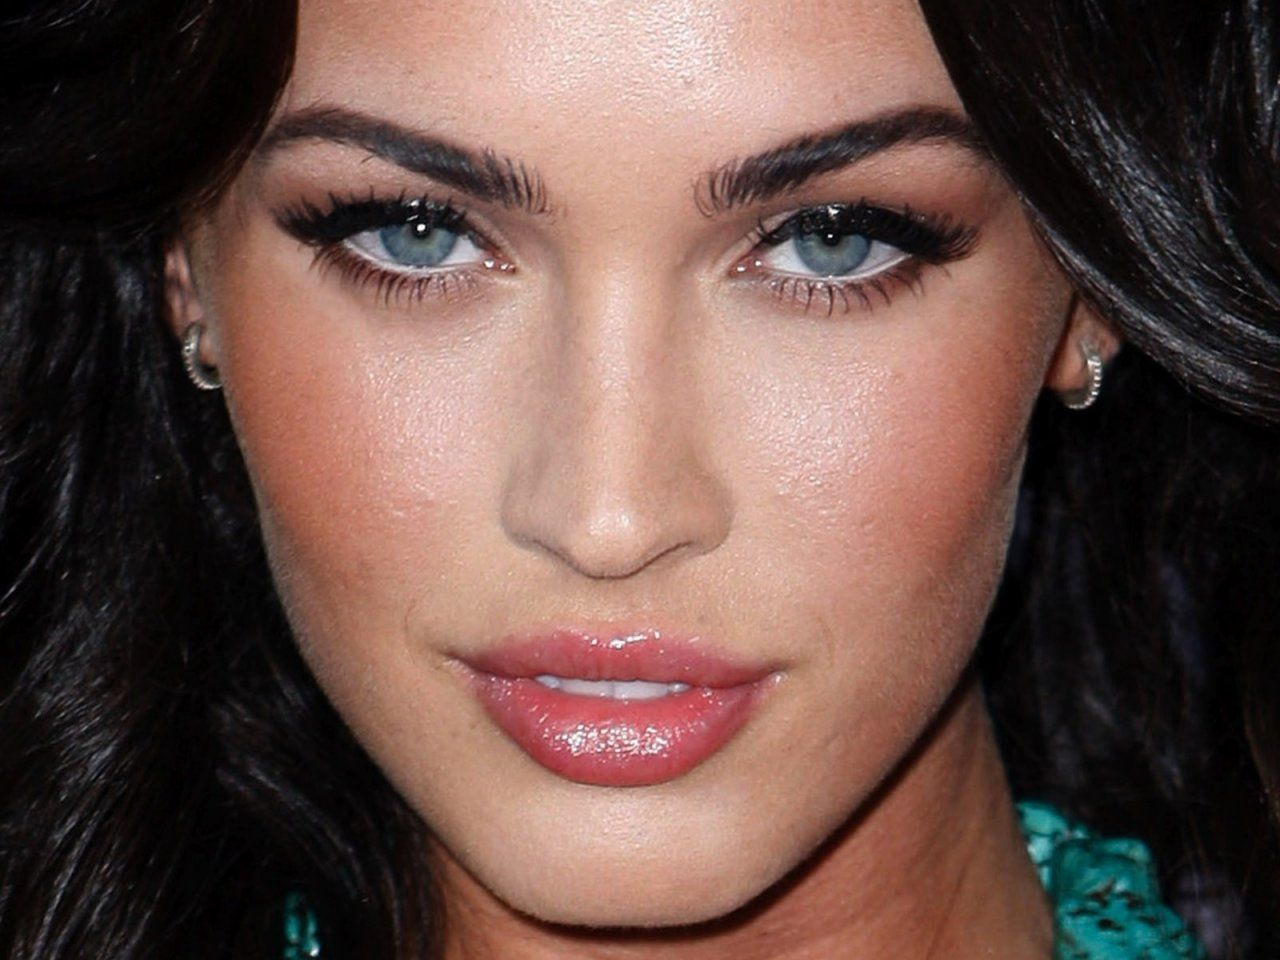 Megan Fox Bing Images I Love Her Face Dark Hair And Blue Eyes With